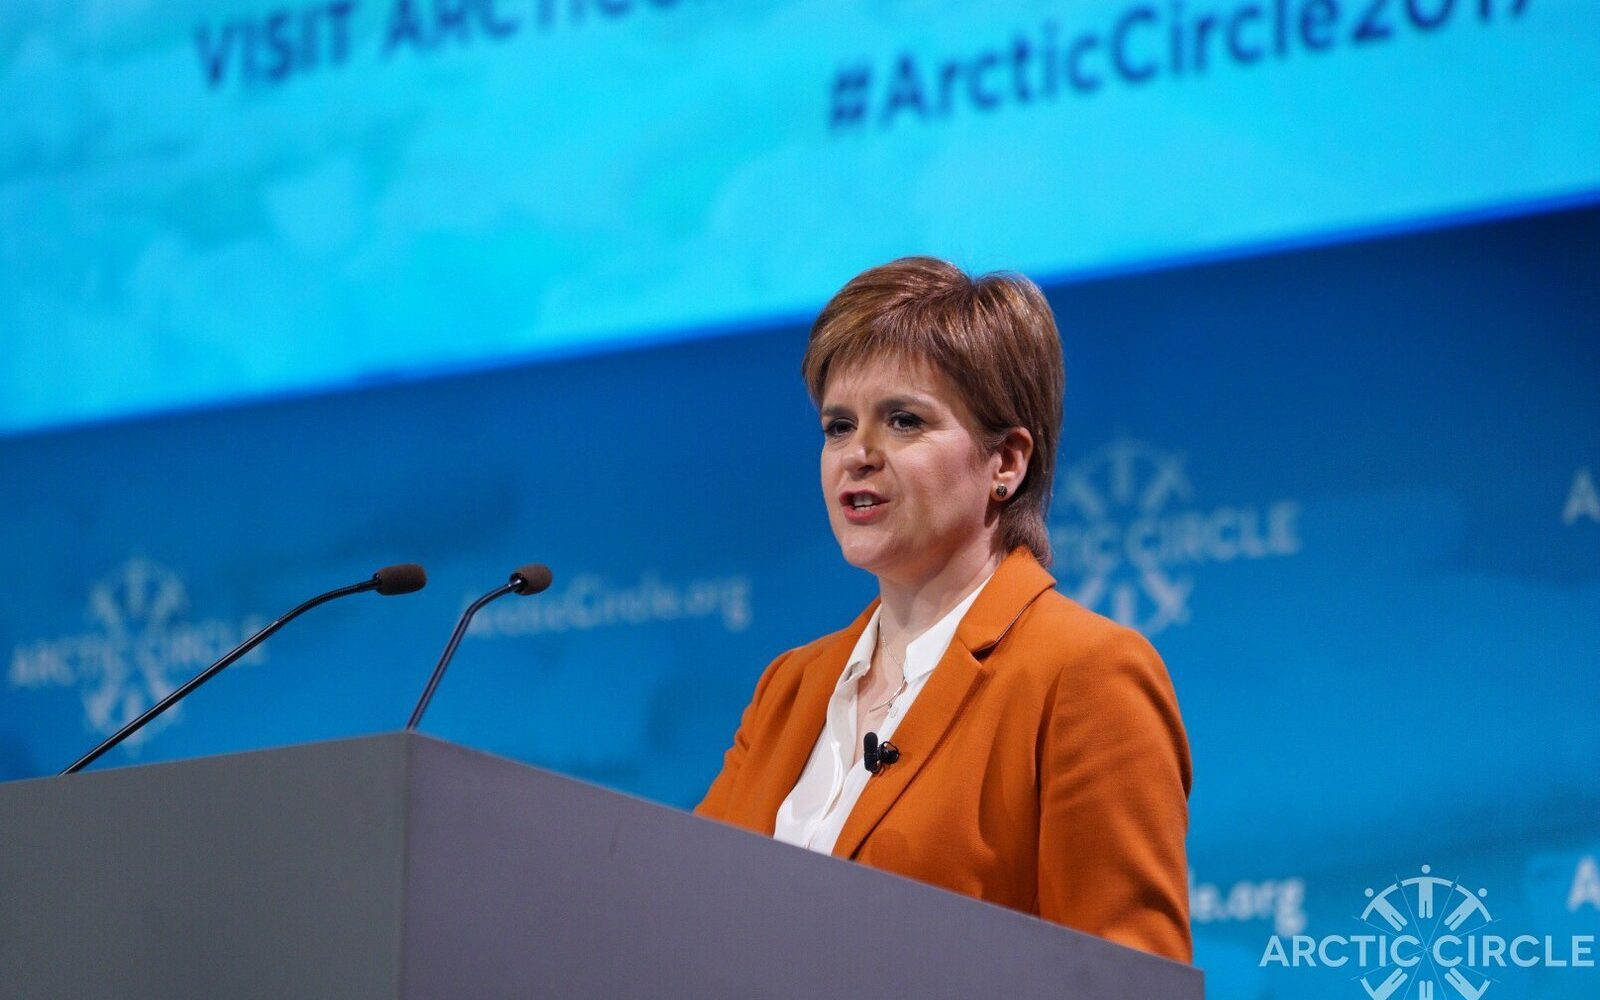 First Minister Nicola Sturgeon. Image: Arctic Circle.